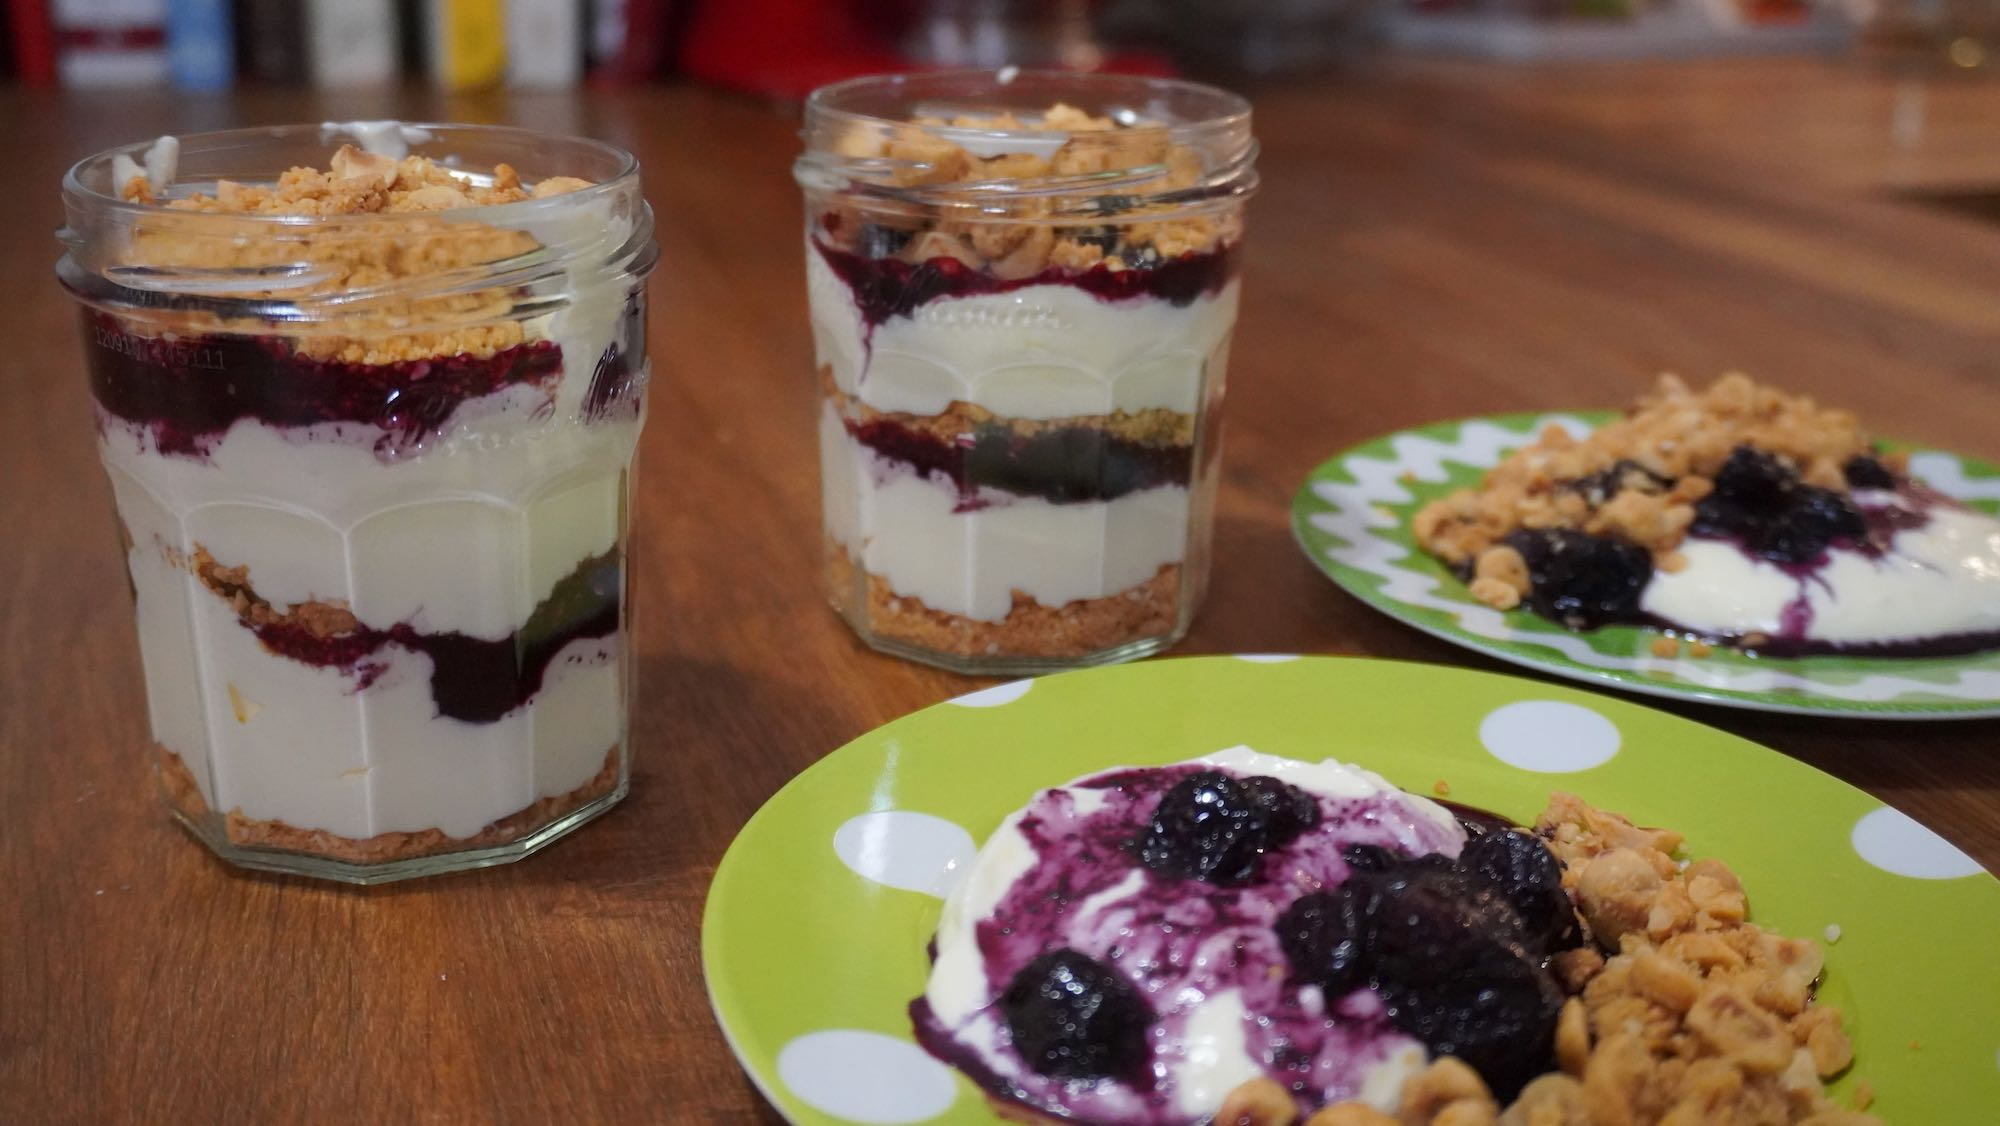 Blueberry Cheesecake: hipster jar style, no-bake + gluten-free